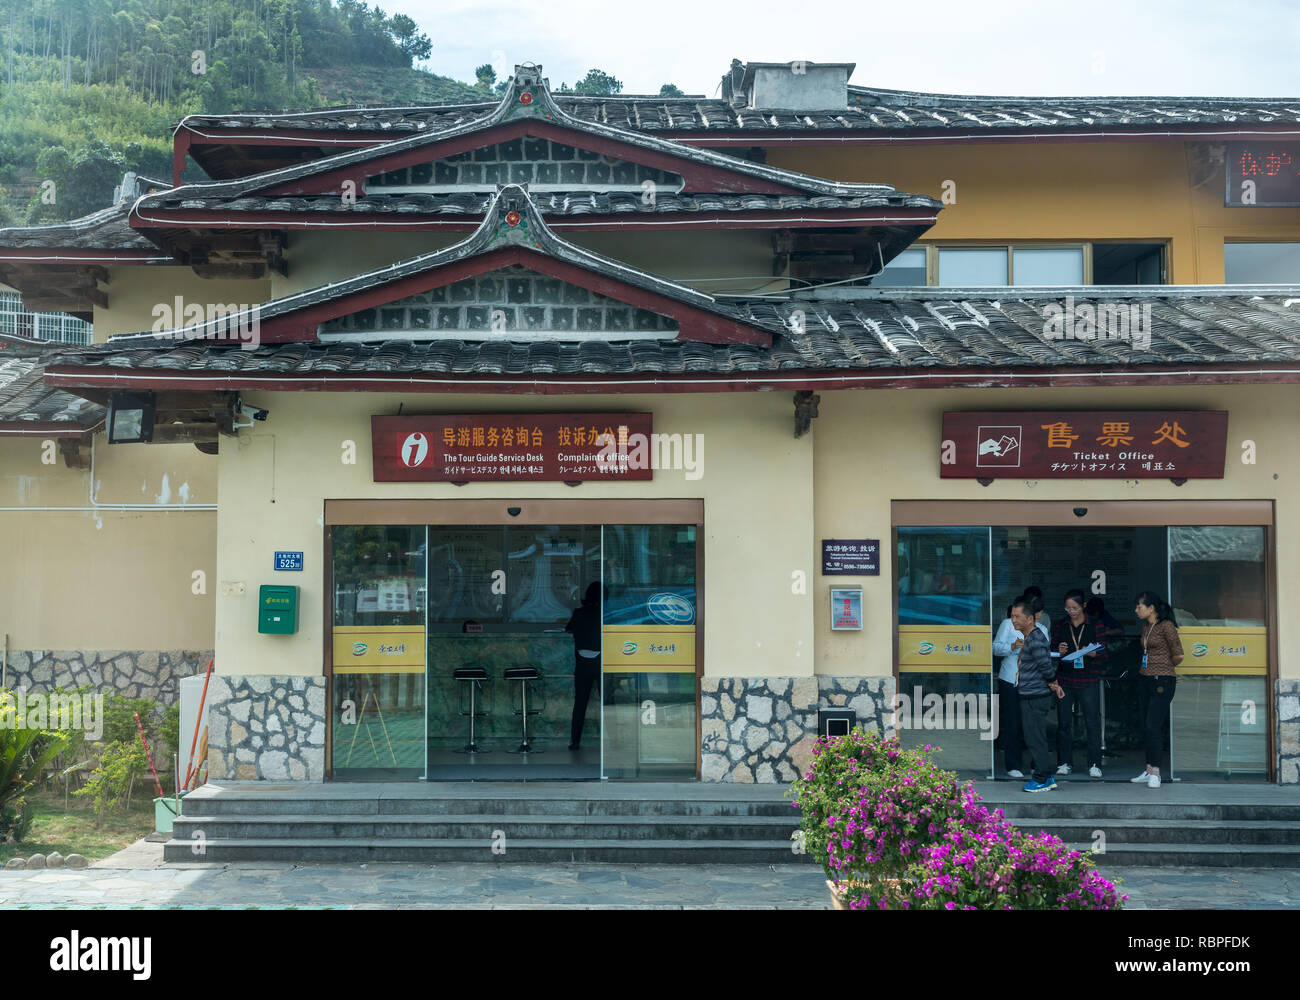 Ticket office at Huaan Tulou site in Fujian province - Stock Image